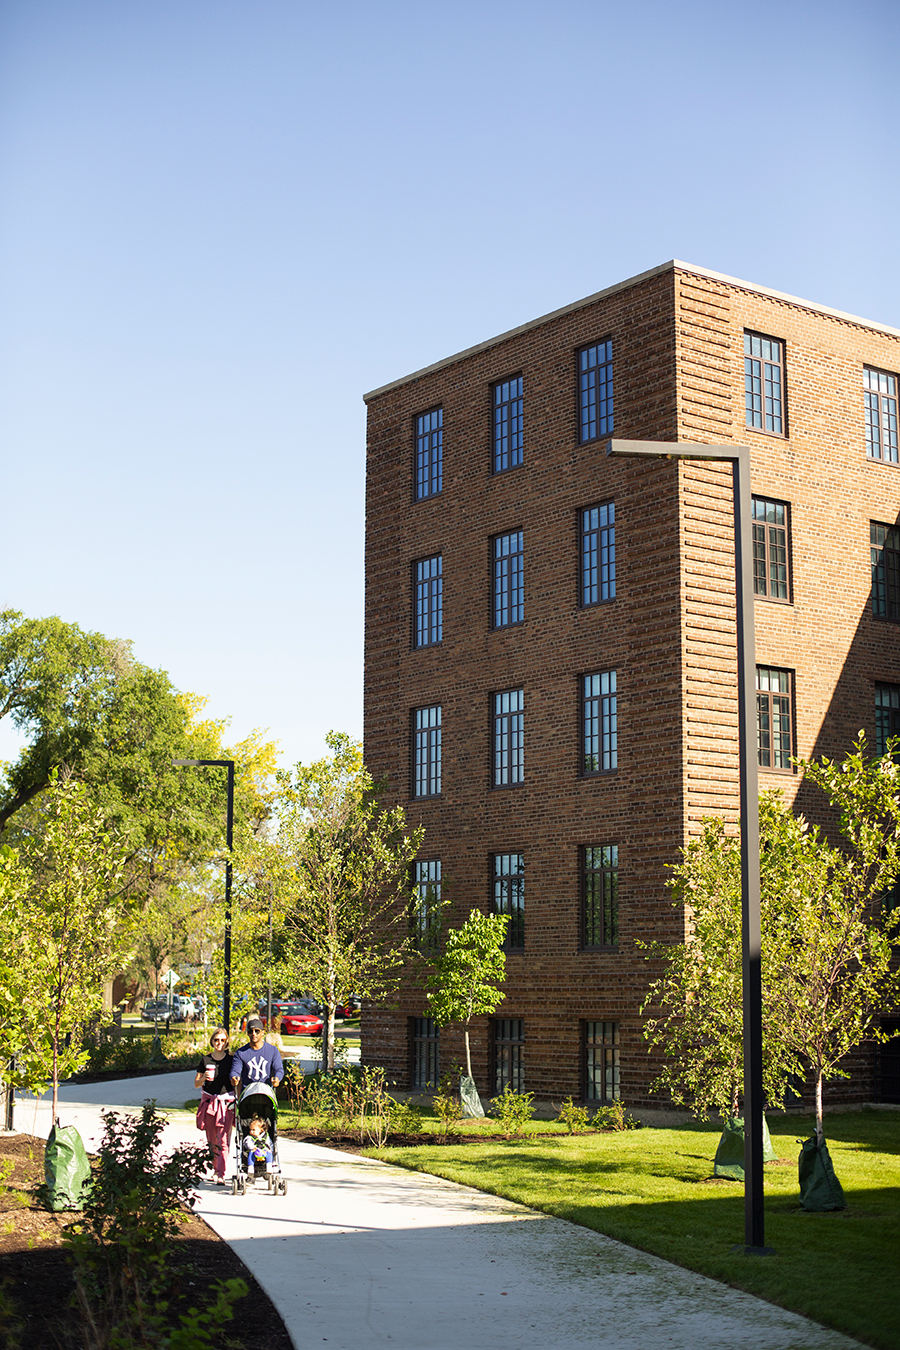 The redevelopment of the Lathrop Homes into a mixed-income community was led by Related Midwest. Many of the old buildings were rehabbed, and unsubsidized rents for studios now start at $1,200.